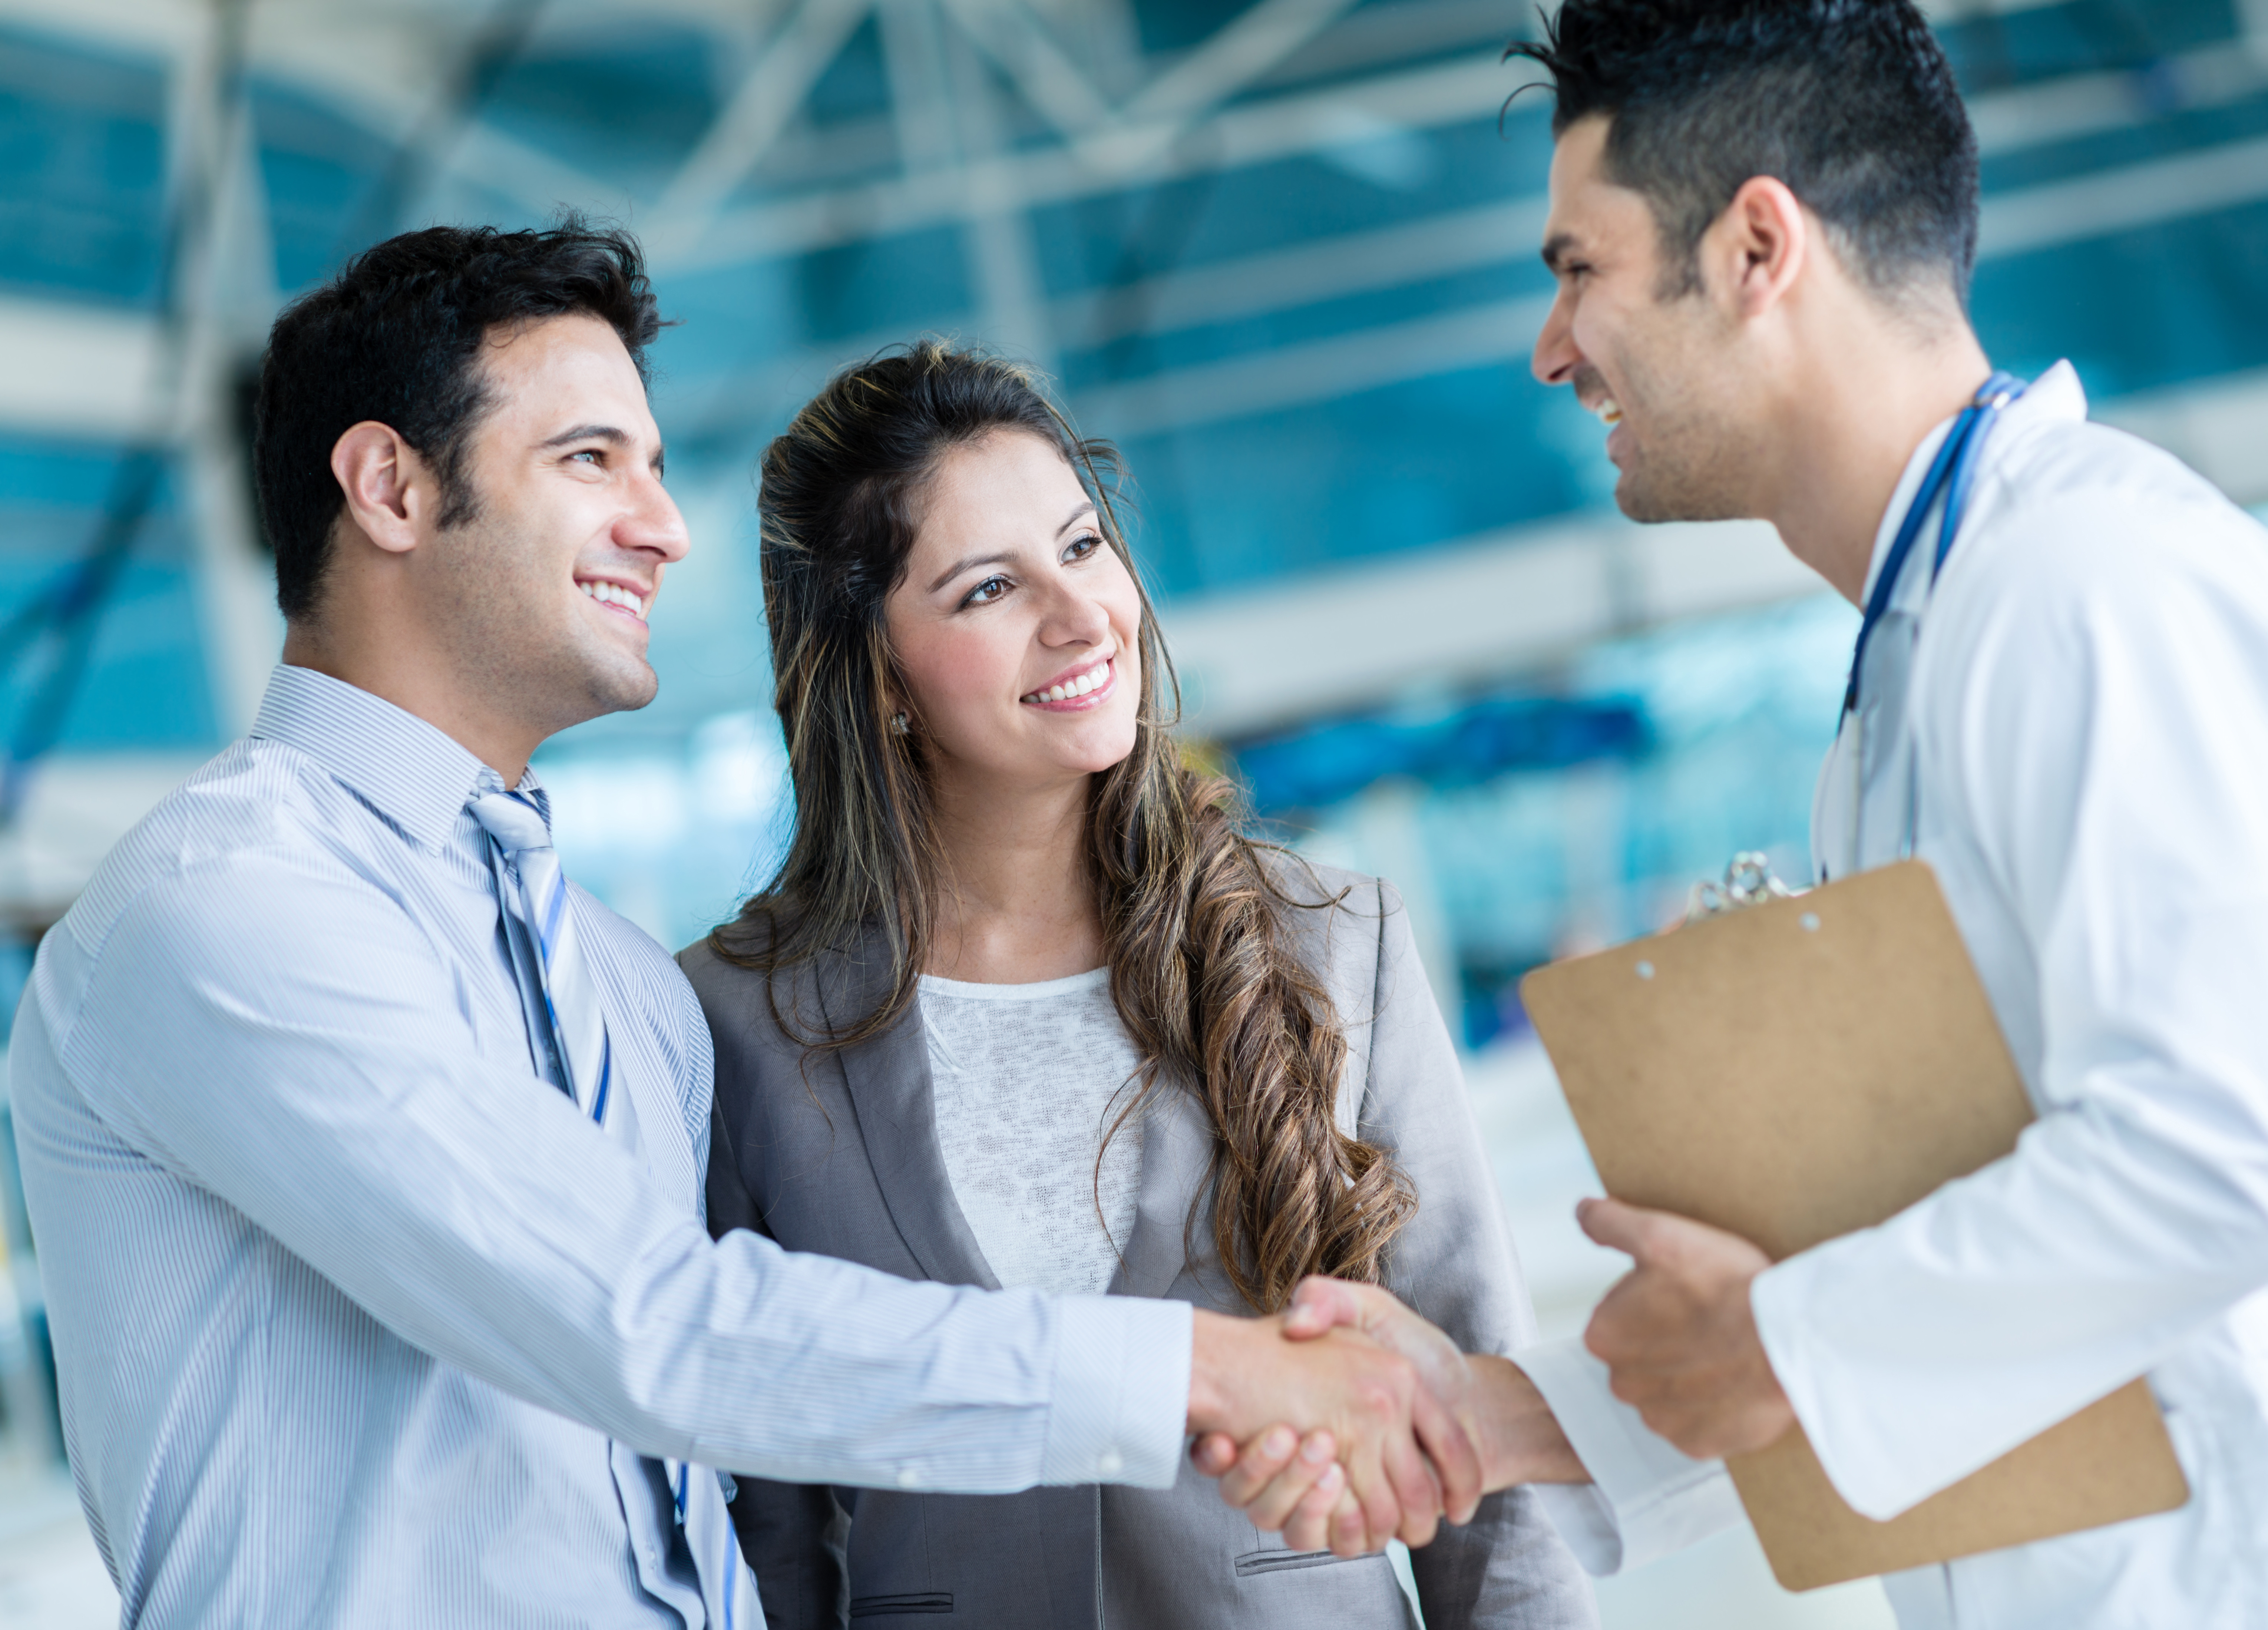 Family doctor handshaking a couple at the hospital